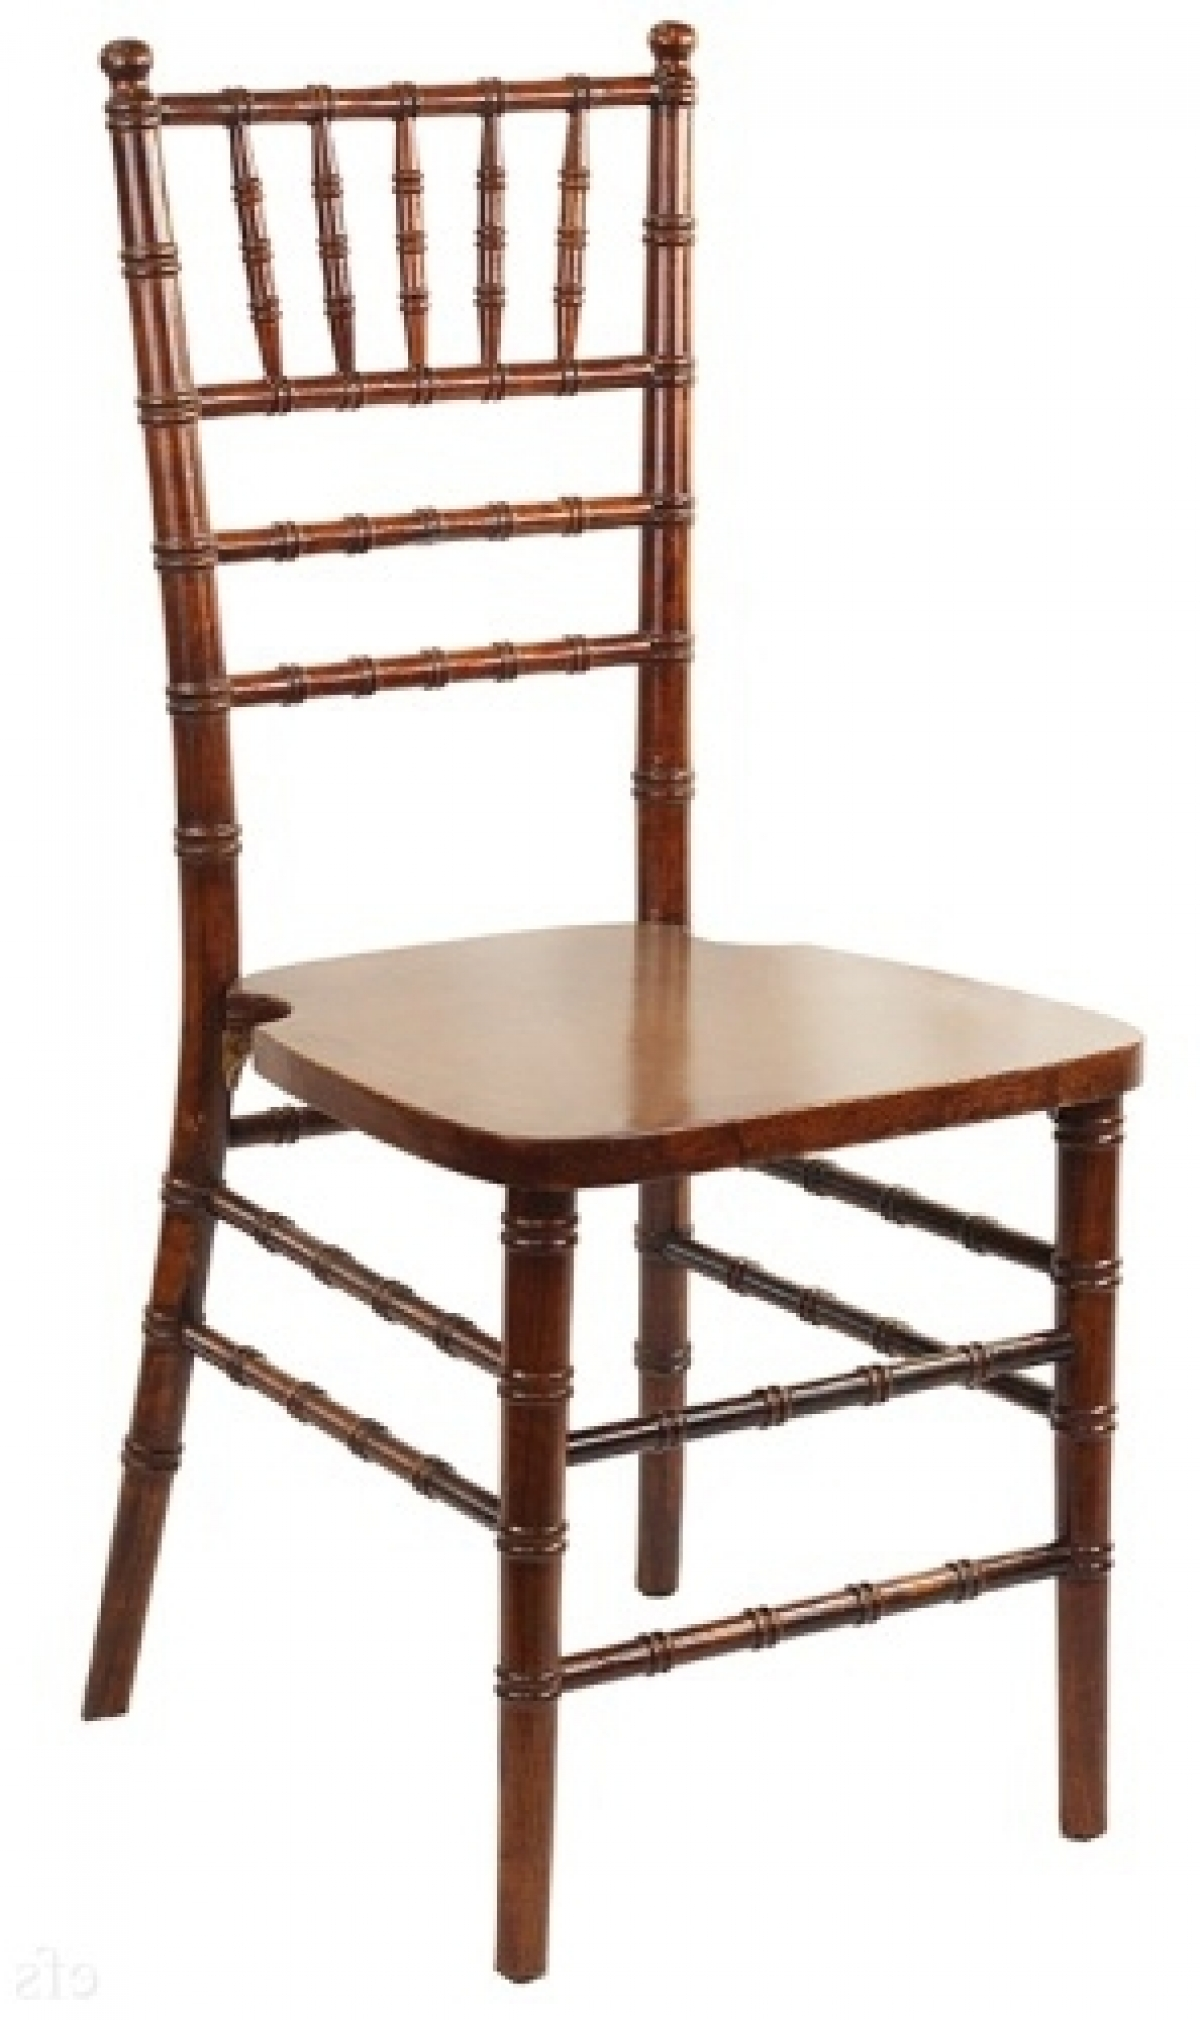 Supreme Furniture Chairs Price Folding Chairs Tables Discount Fruitwood Quotsupreme